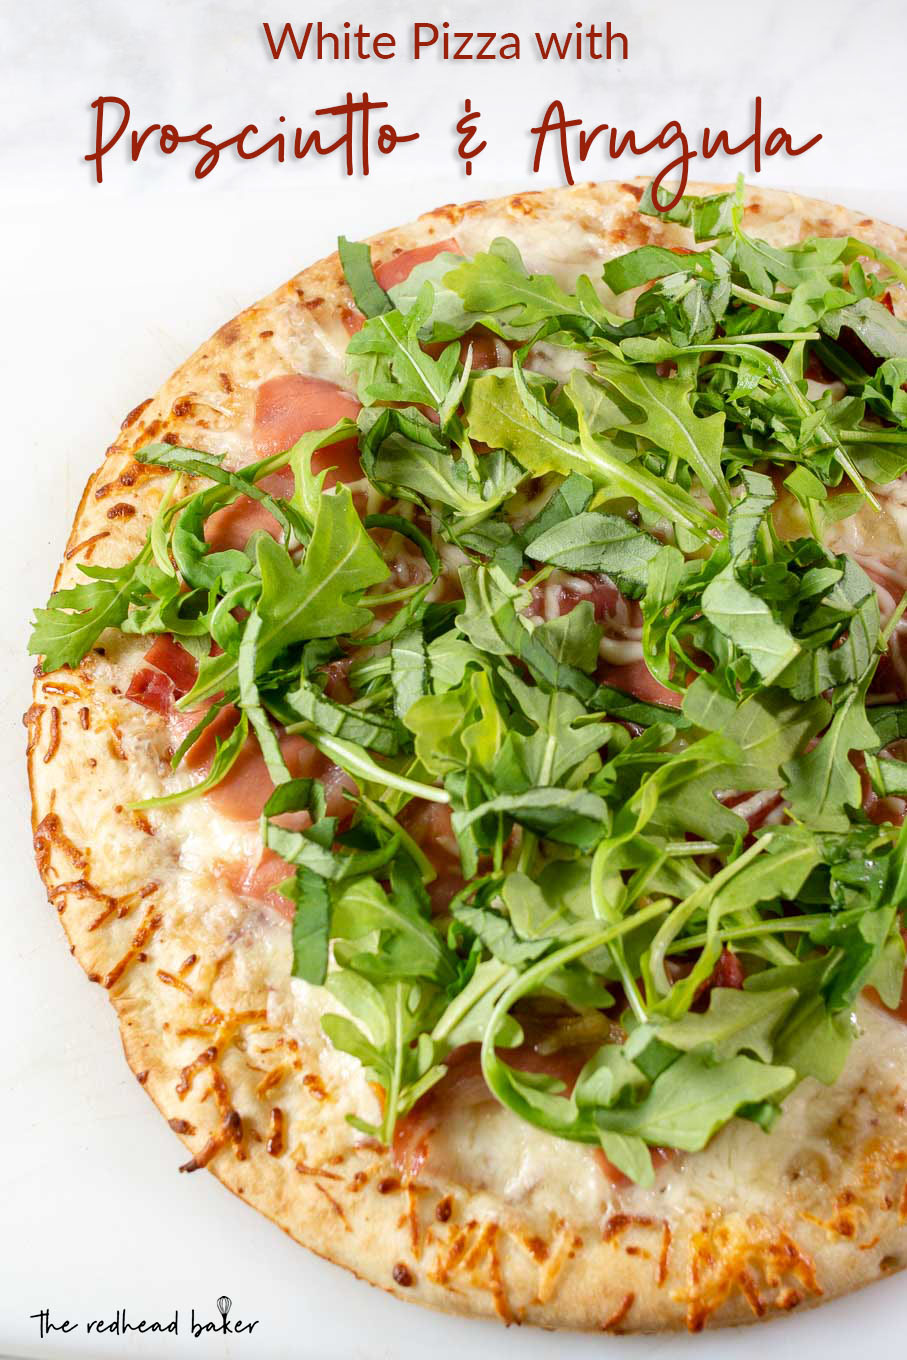 An overhead photo of a whole white pizza with prosciutto and arugula